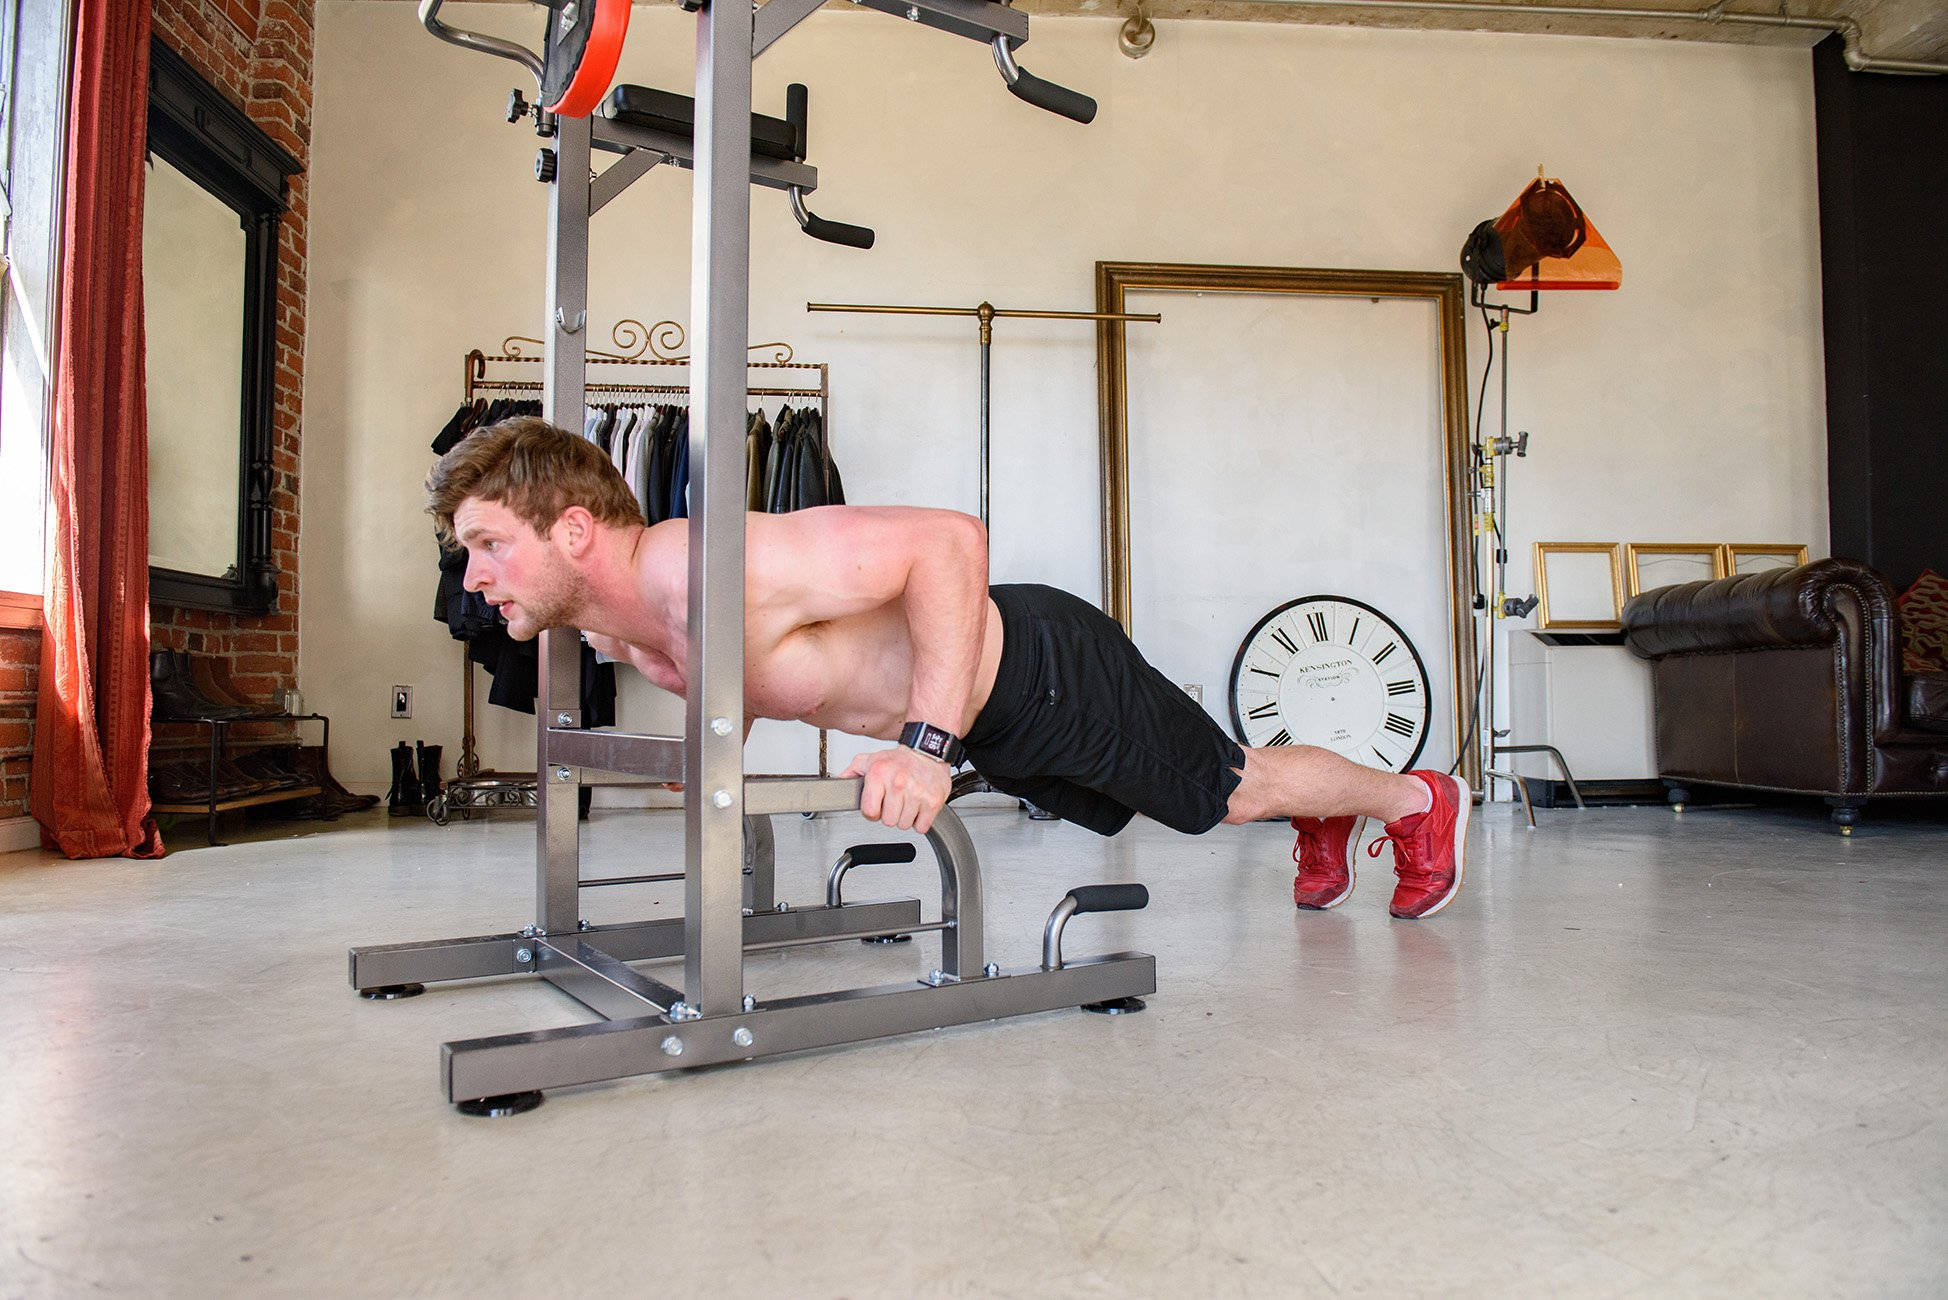 RELIFE REBUILD YOUR LIFE Power Tower Workout Dip Station for Home Gym Strength Training Fitness Equipment Newer Version by RELIFE REBUILD YOUR LIFE (Image #7)